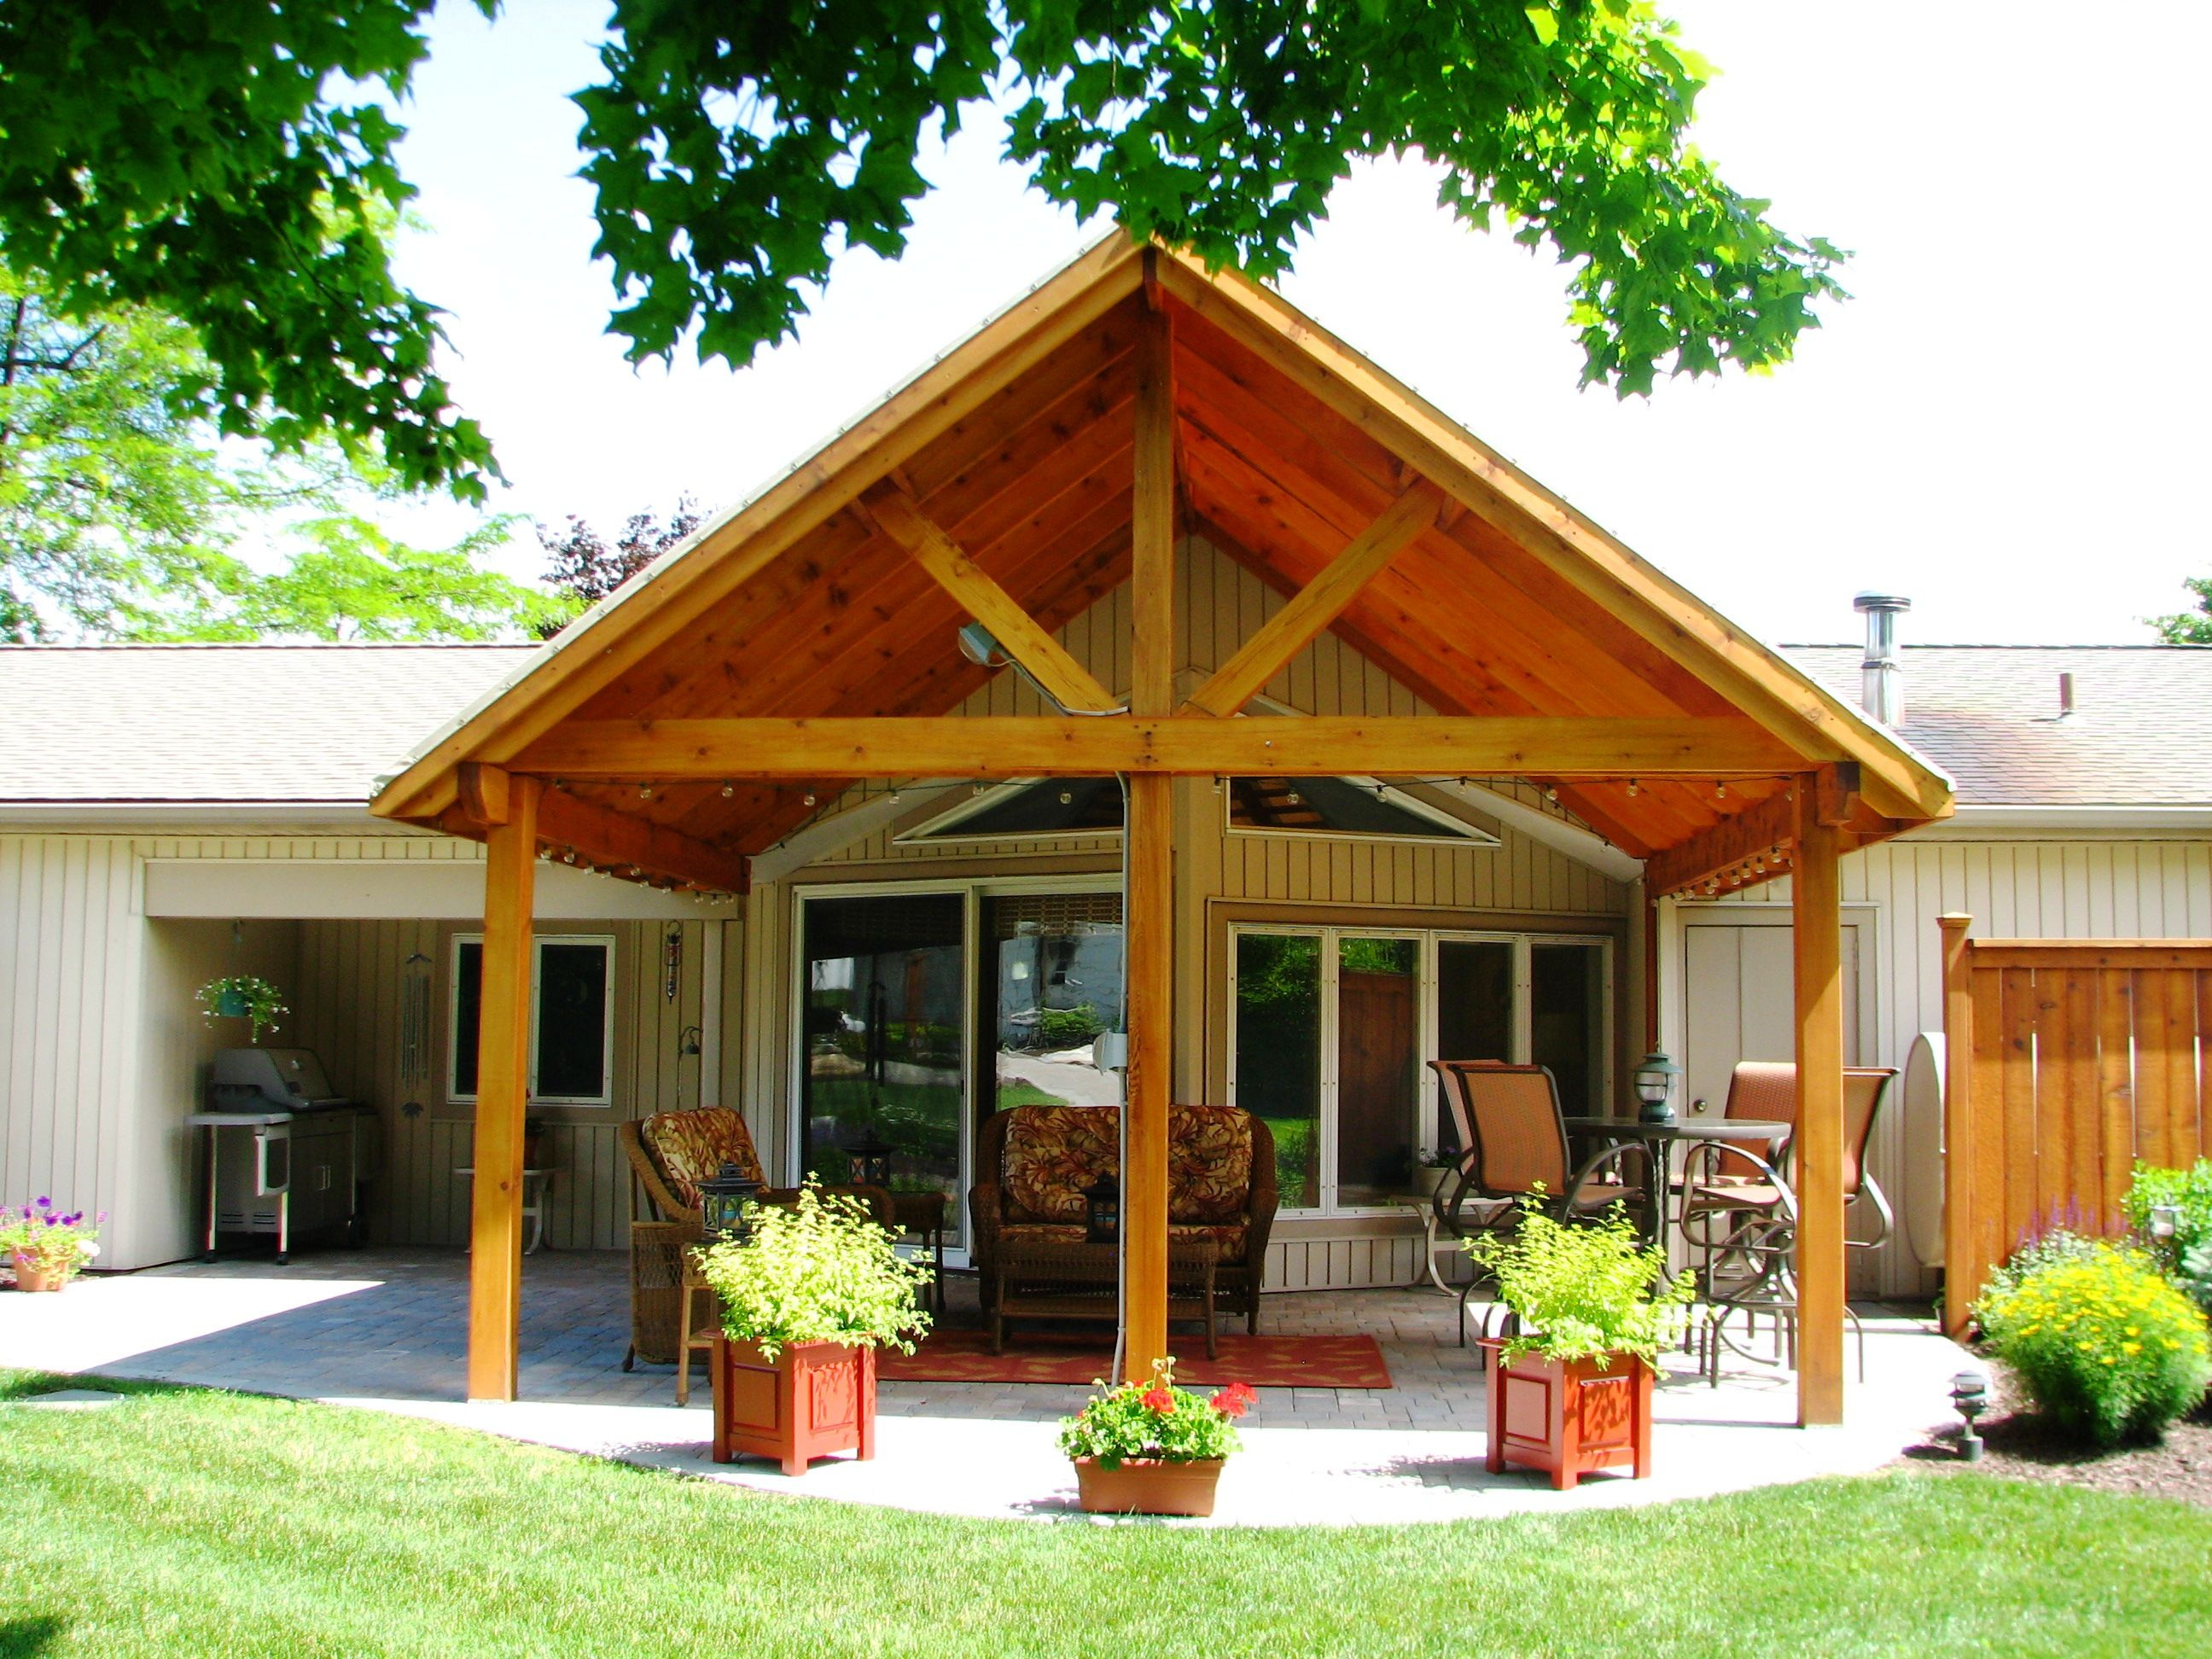 Lovely open air patio roof structure | Outdoor patio ... on Open Patio Designs id=14918